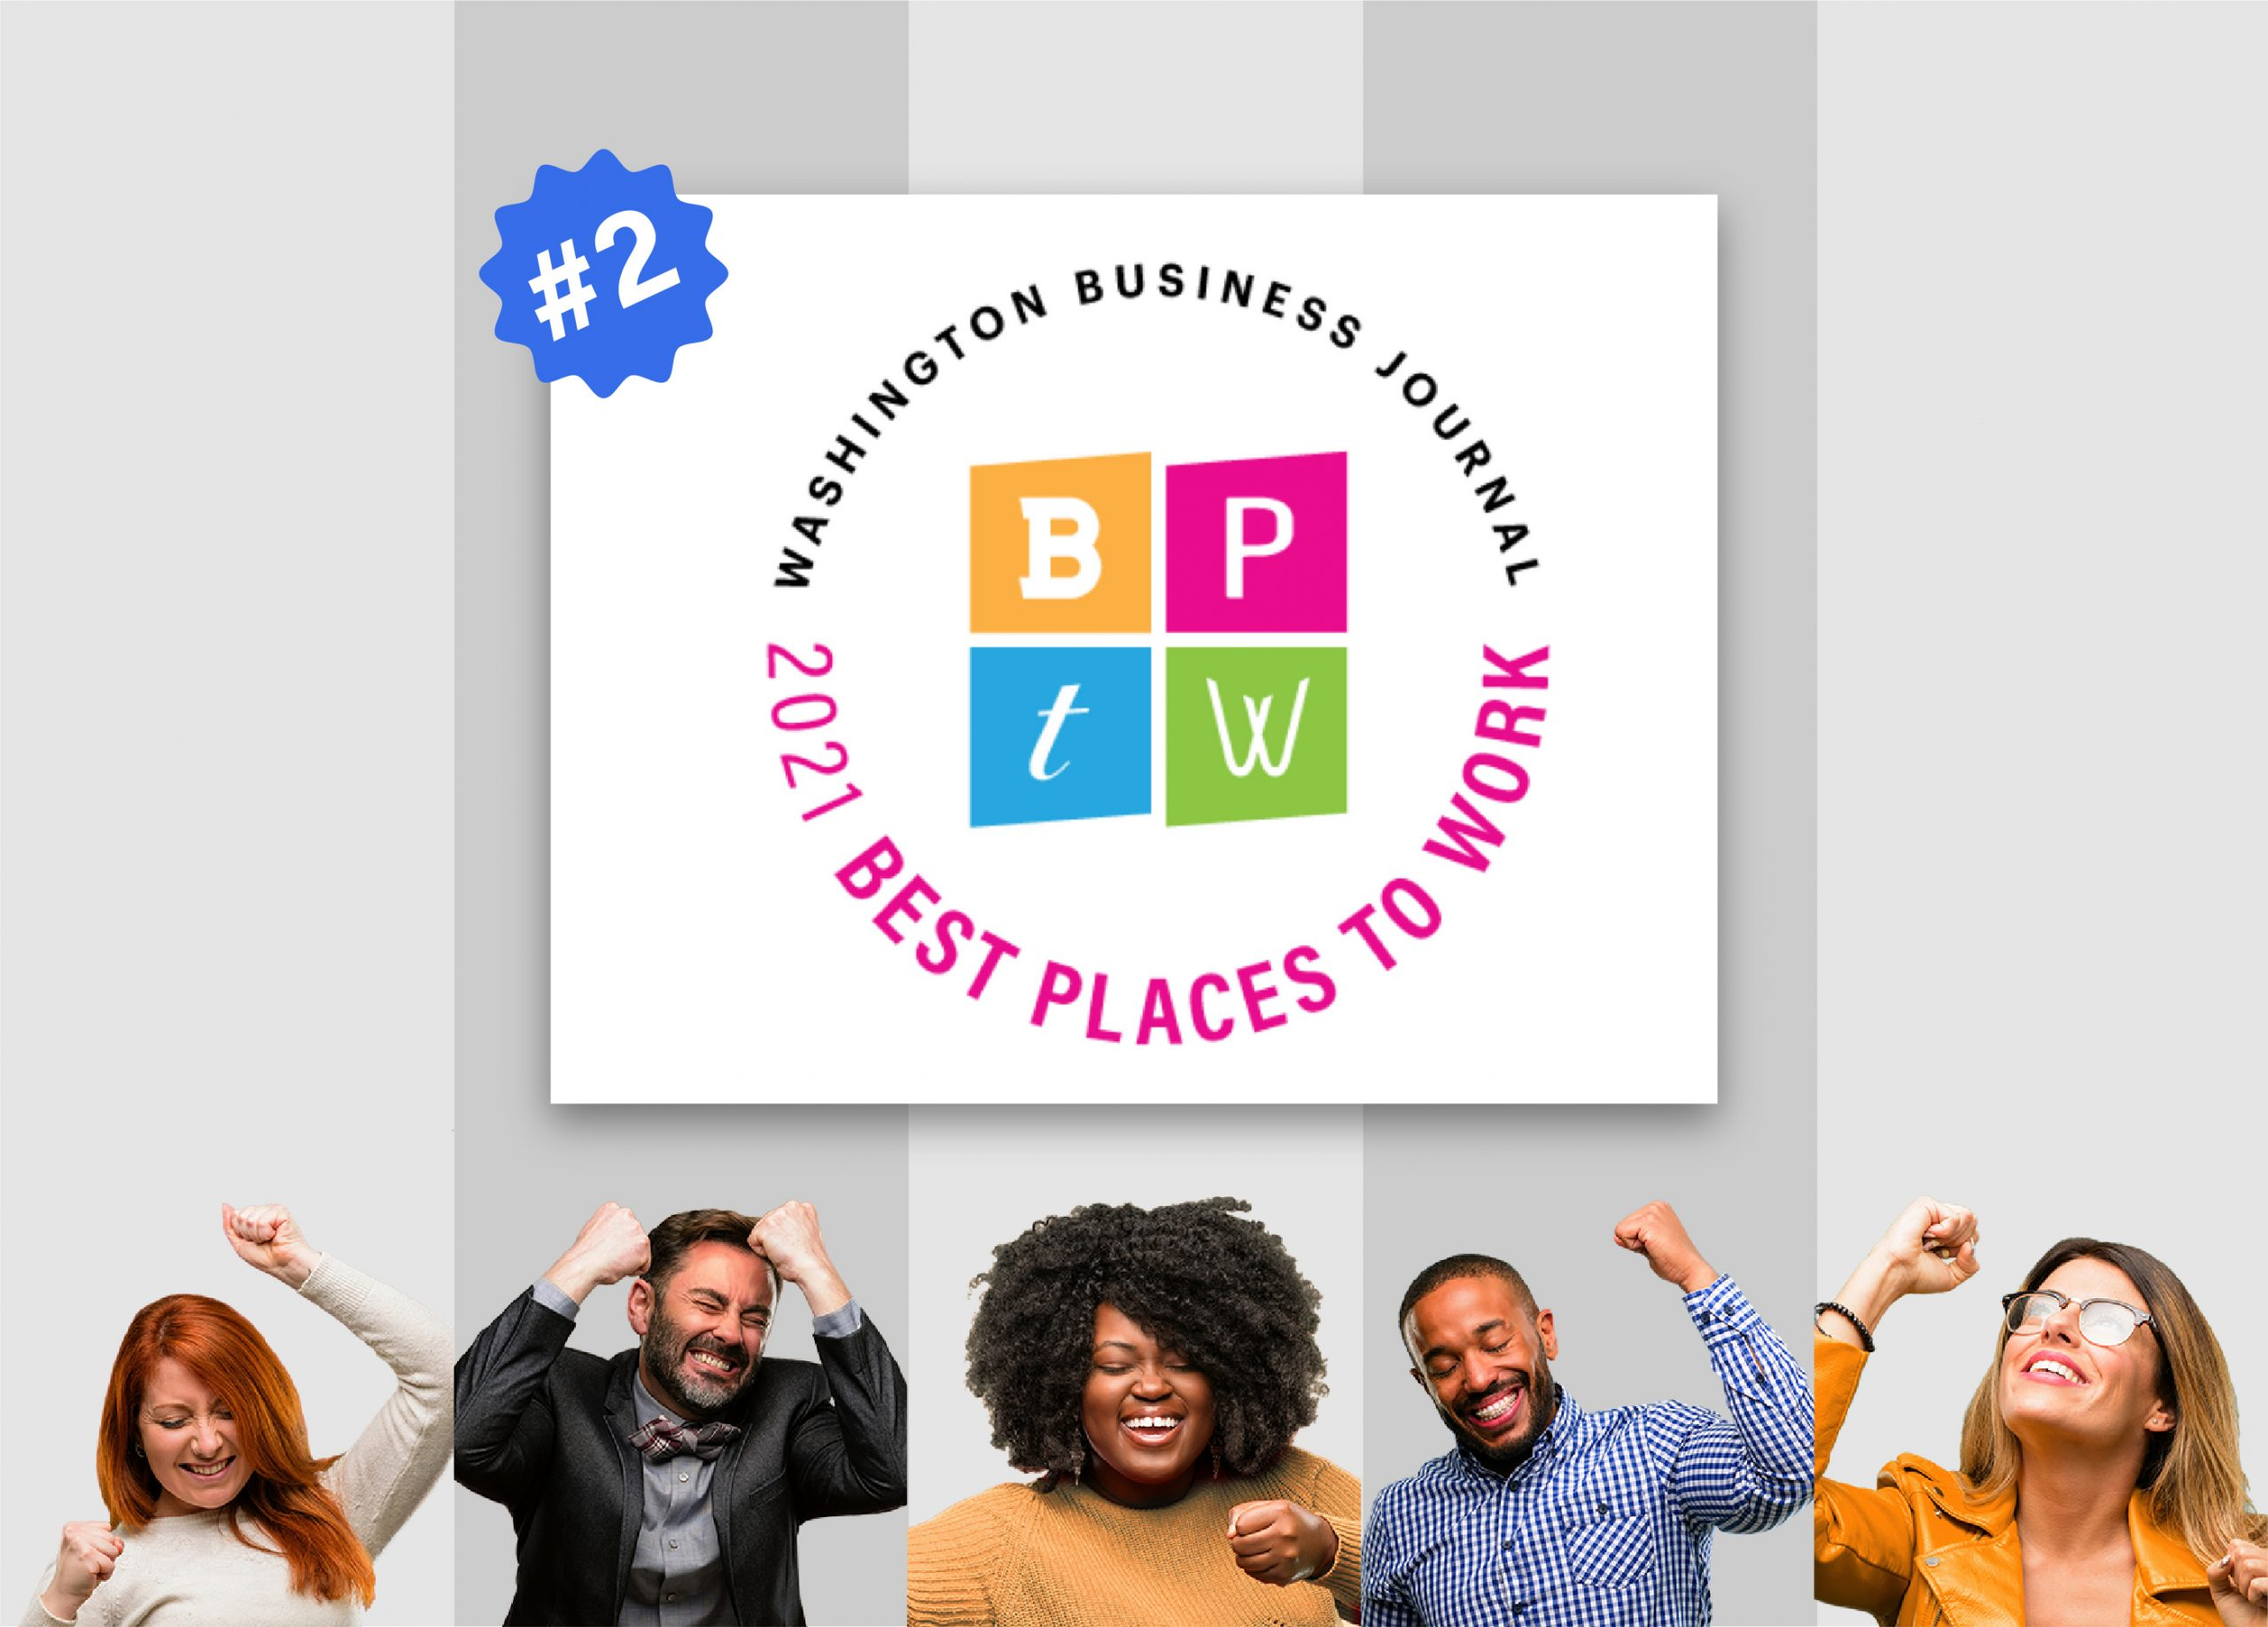 WBJ Best Places to Work